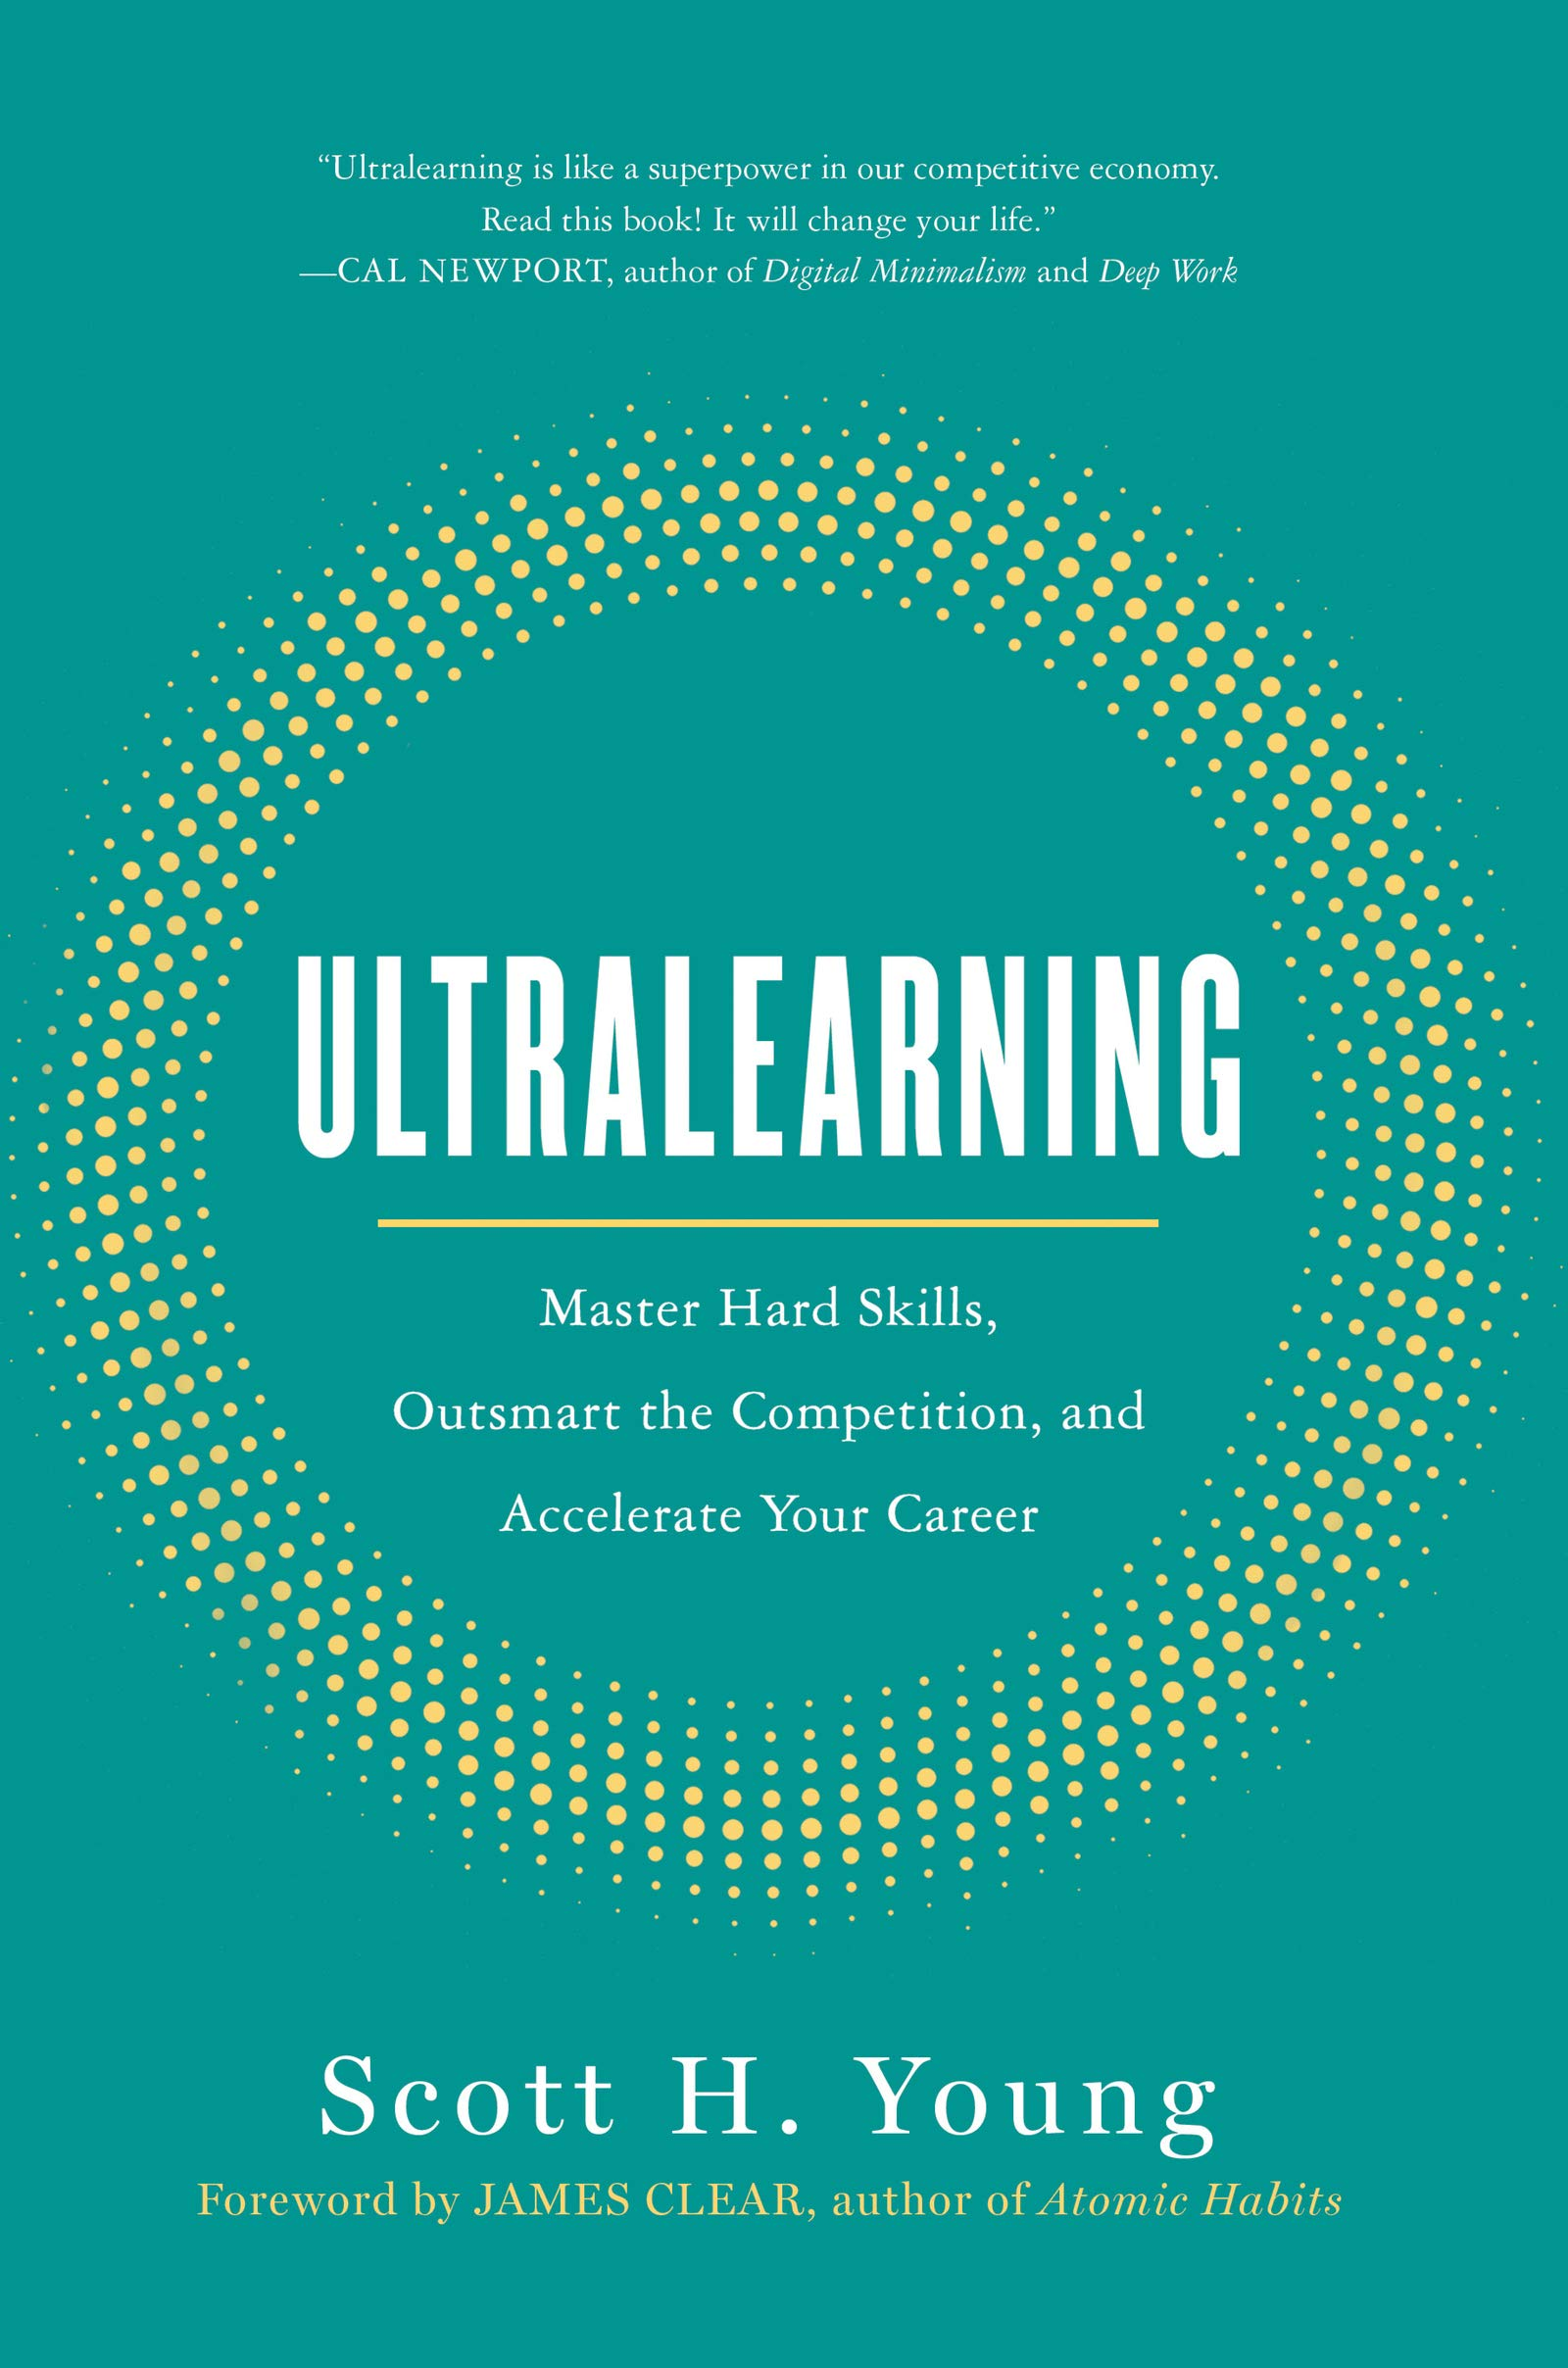 Ultralearning: Master Hard Skills, Outsmart the Competition, and Accelerate Your Career by HarperBusiness